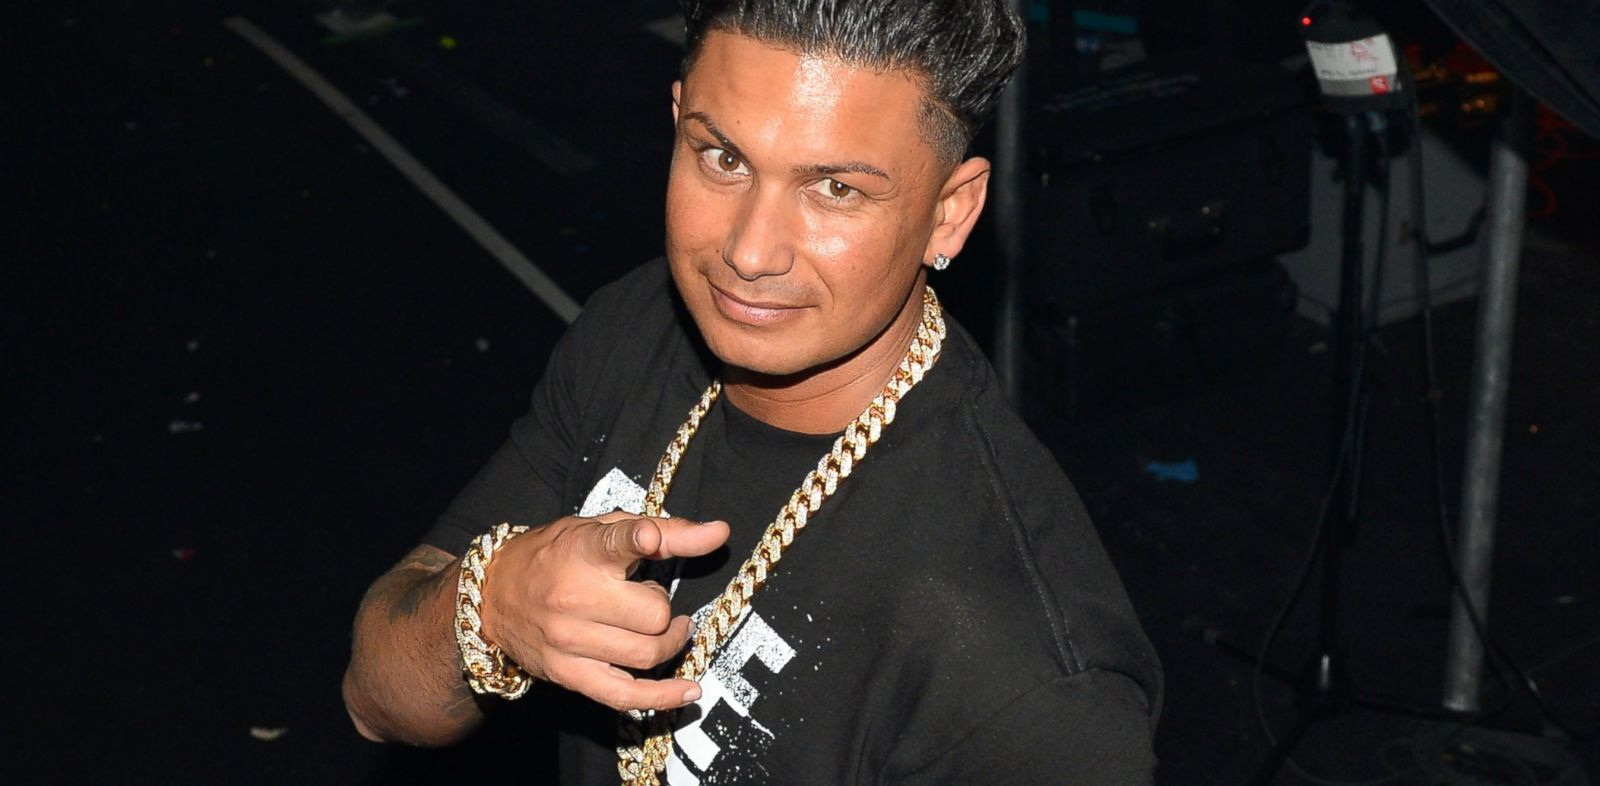 PHOTO: Pauly D attends the iHeartRadio Music Festival at the MGM Grand Garden Arena on September 21, 2013 in Las Vegas, Nev.